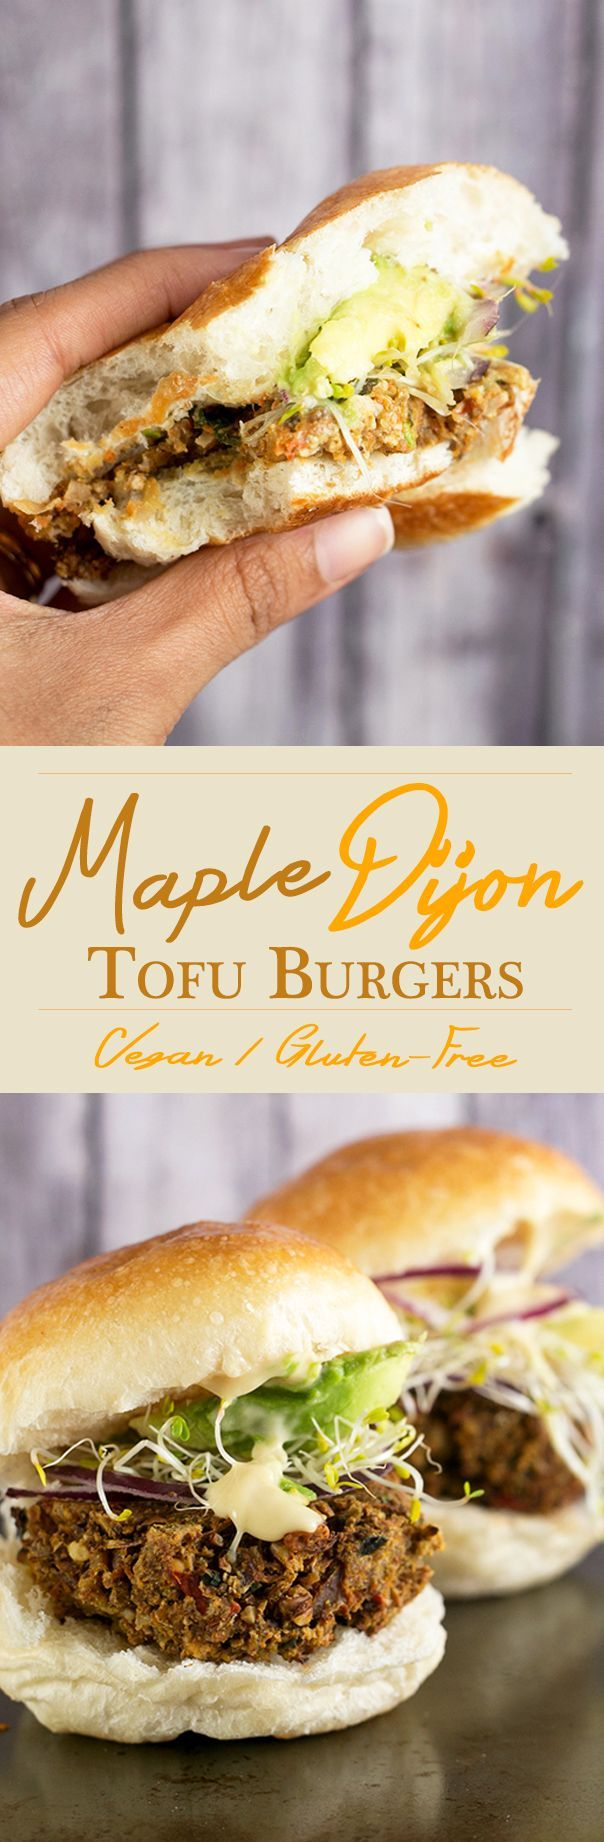 Maple Dijon Tofu Burgers - a healthy veggie burger made with Tofu and Walnuts, served with a Maple Dijon Mayonnaise. #healthy #tofu #burger #veggieburger #glutenfree #vegan #foodporn #delicious #burger #maple